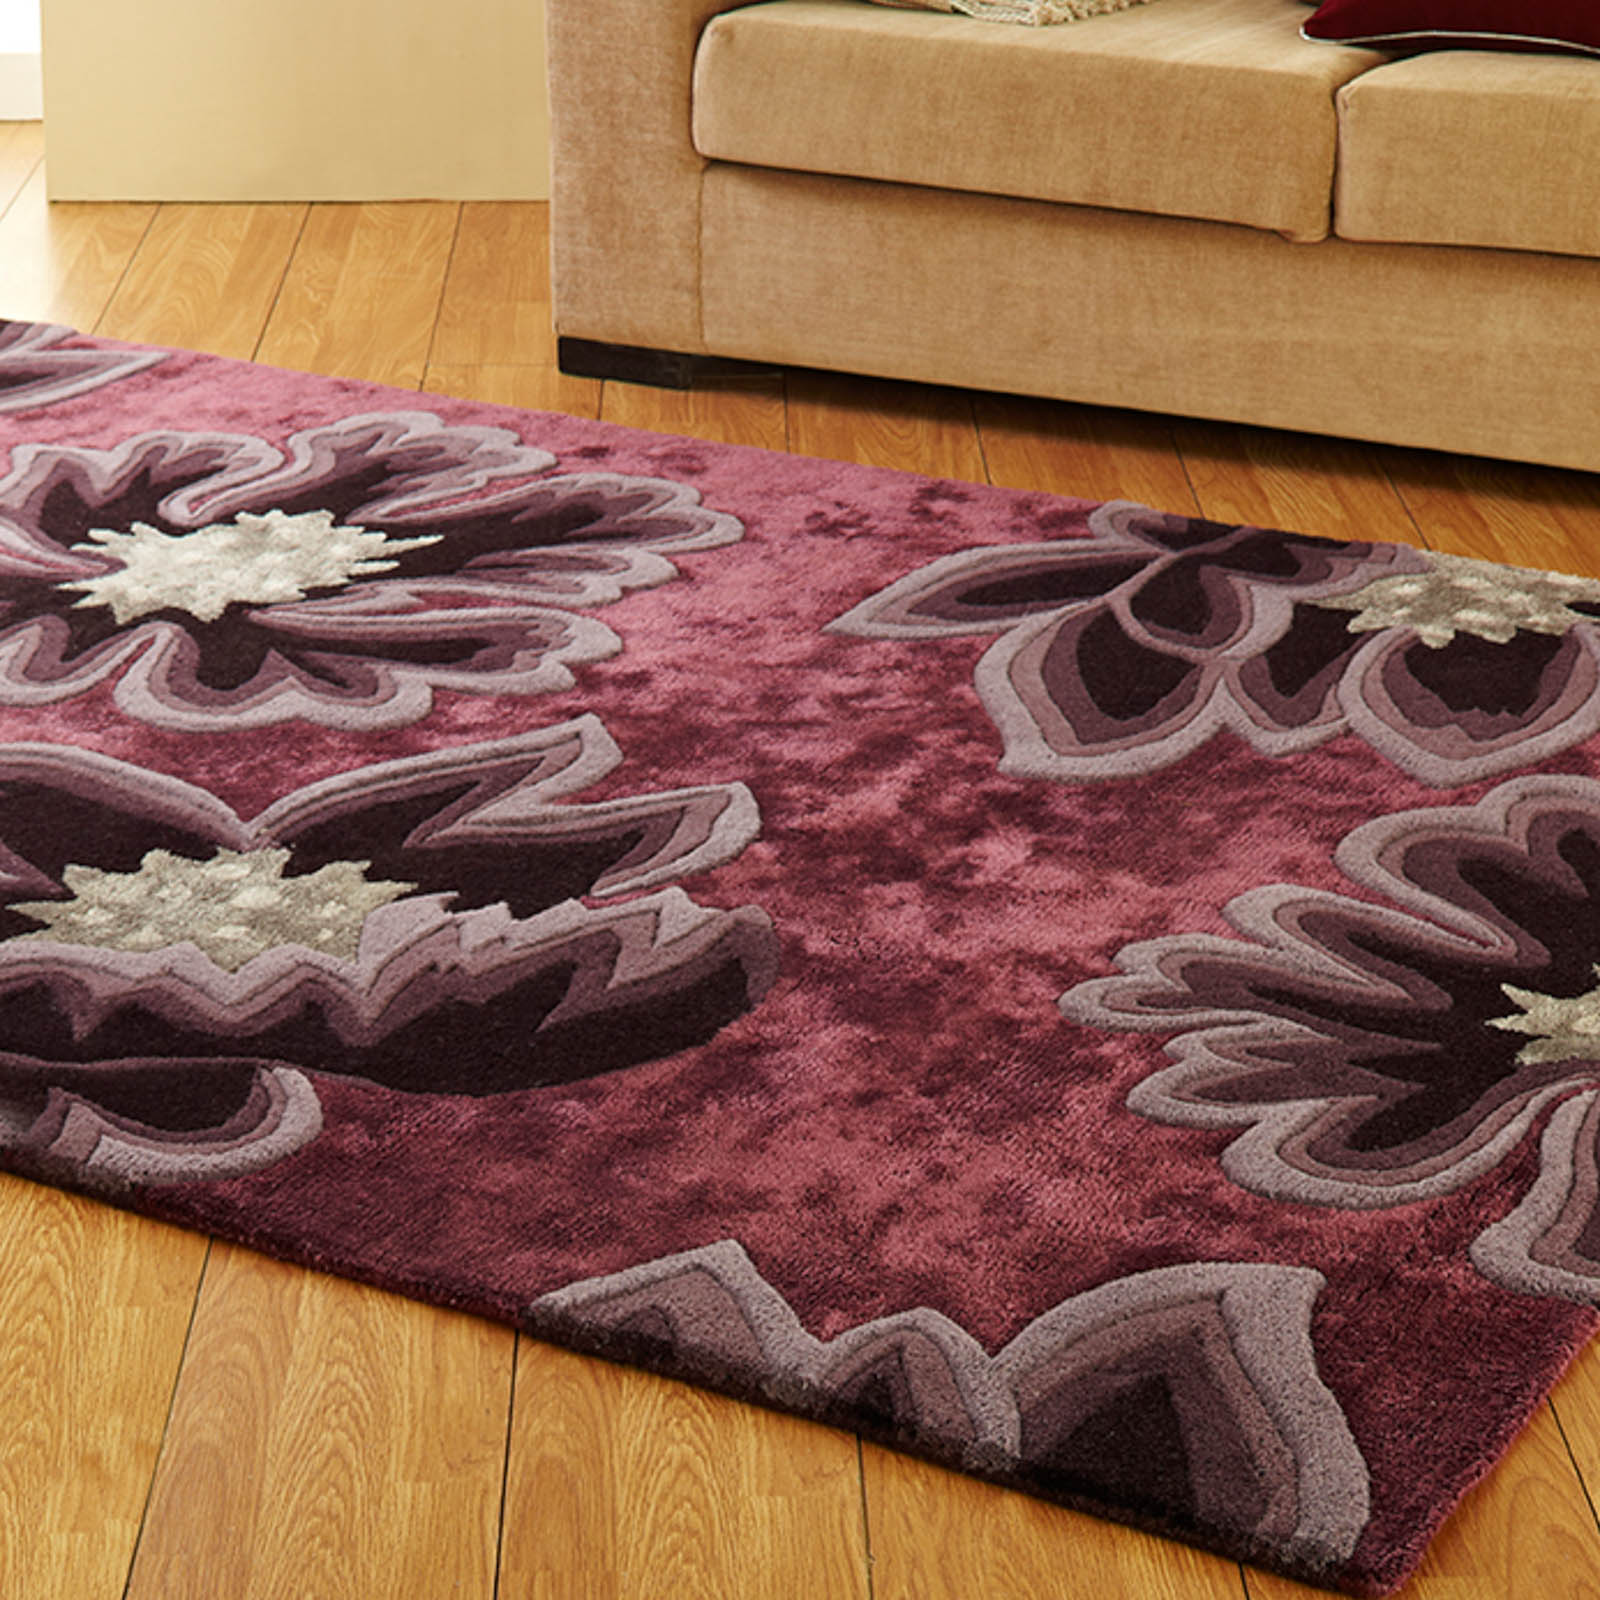 Unique Vintage Rugs in Aubergine